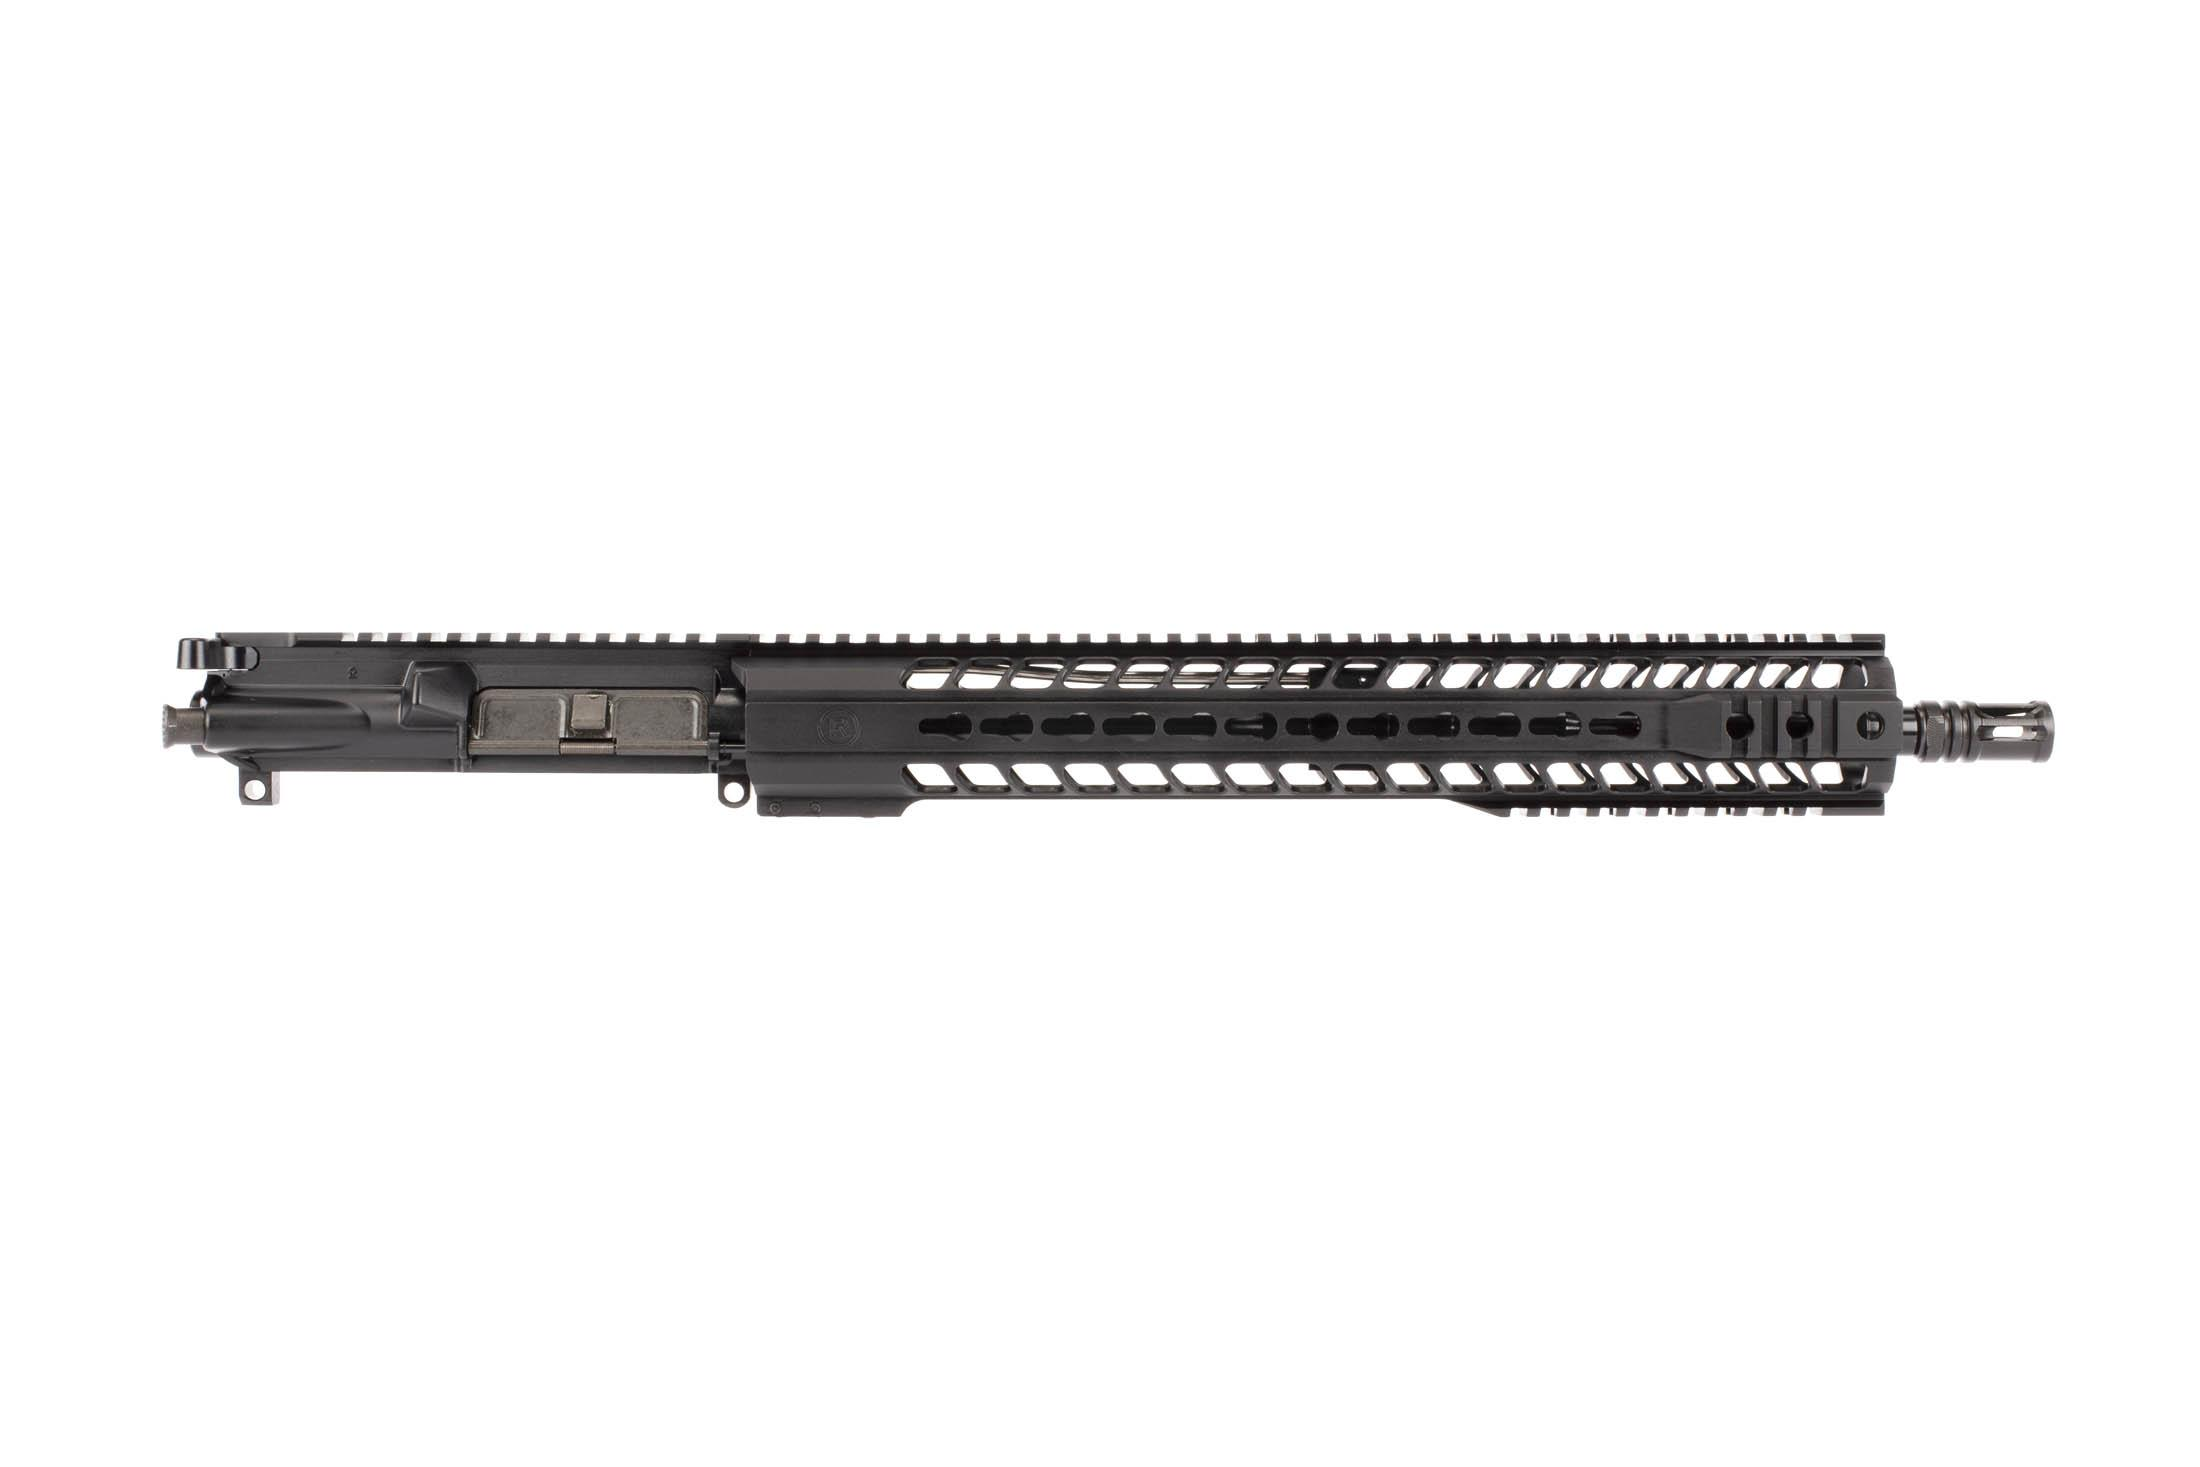 Radical Firearms 16in Complete 5.56 NATO AR-15 Upper has a carbine length gas system